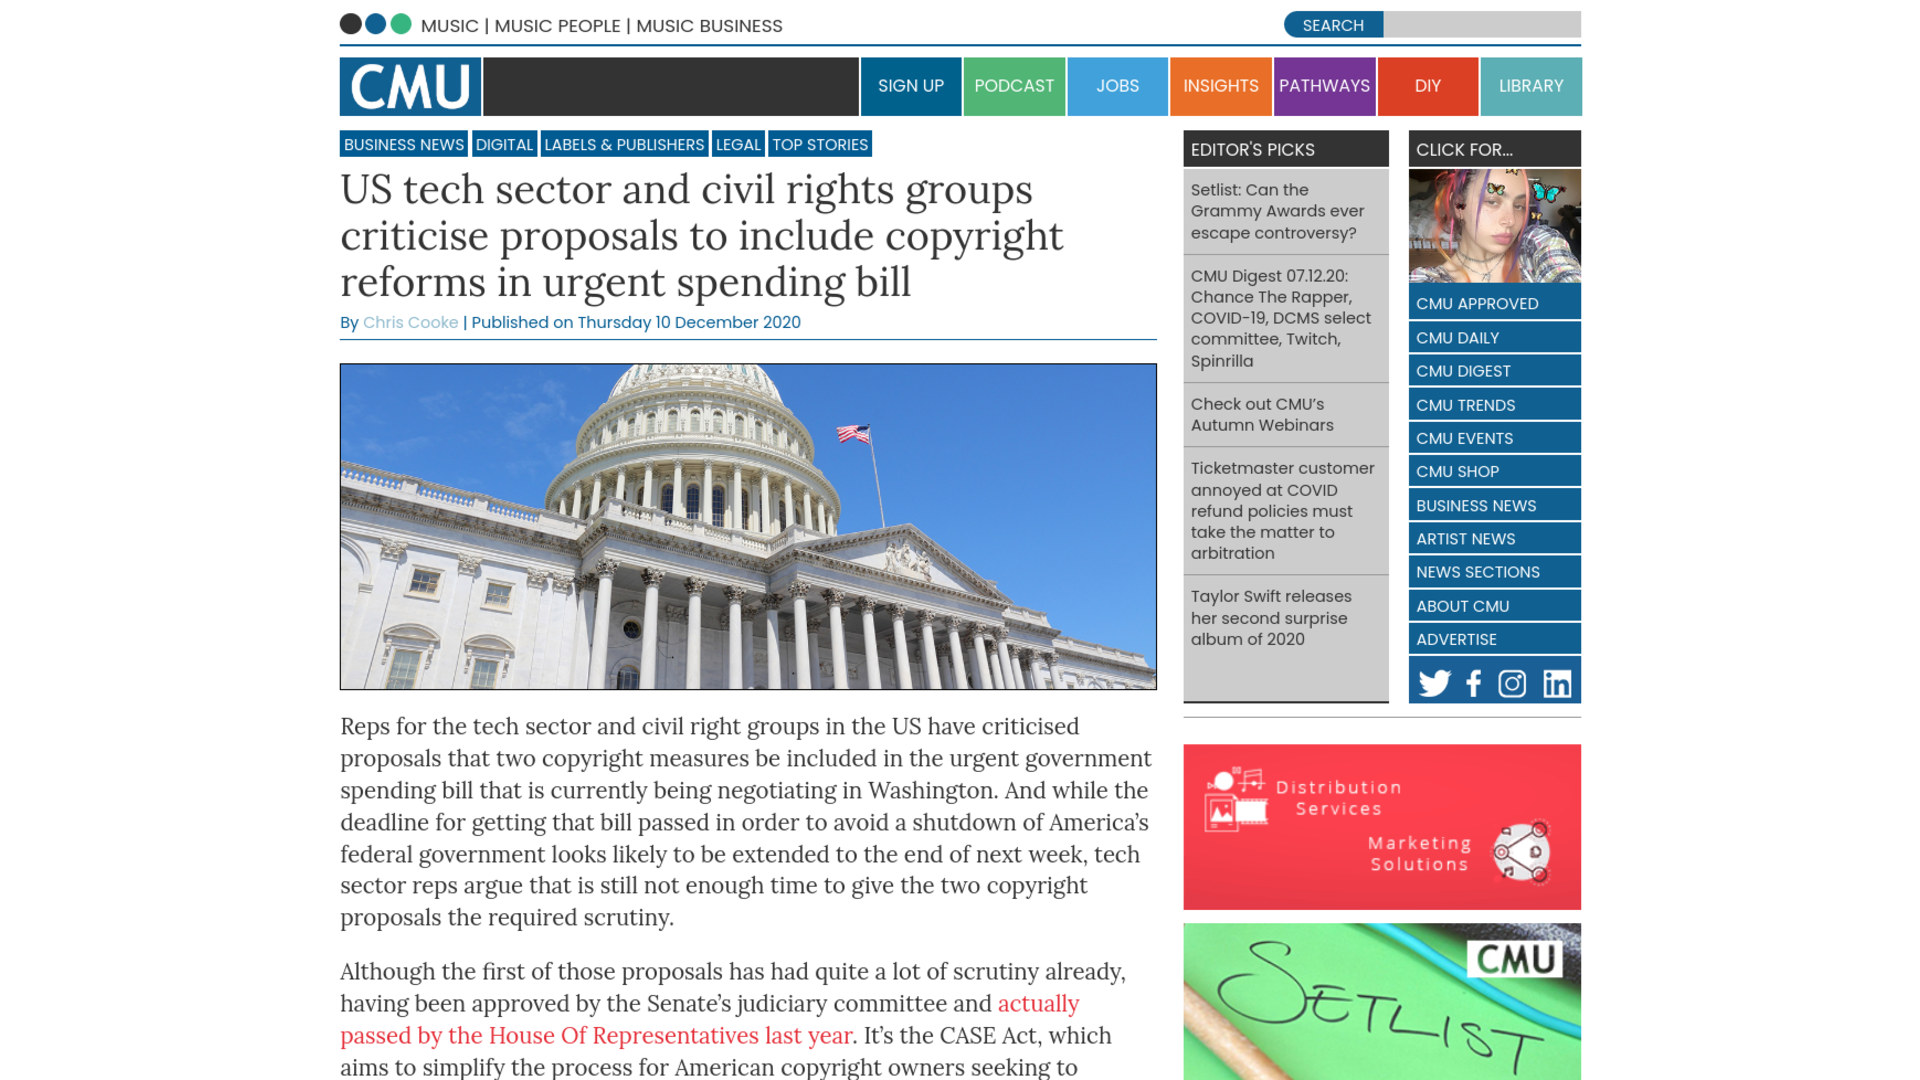 Fairness Rocks News US tech sector and civil rights groups criticise proposals to include copyright reforms in urgent spending bill